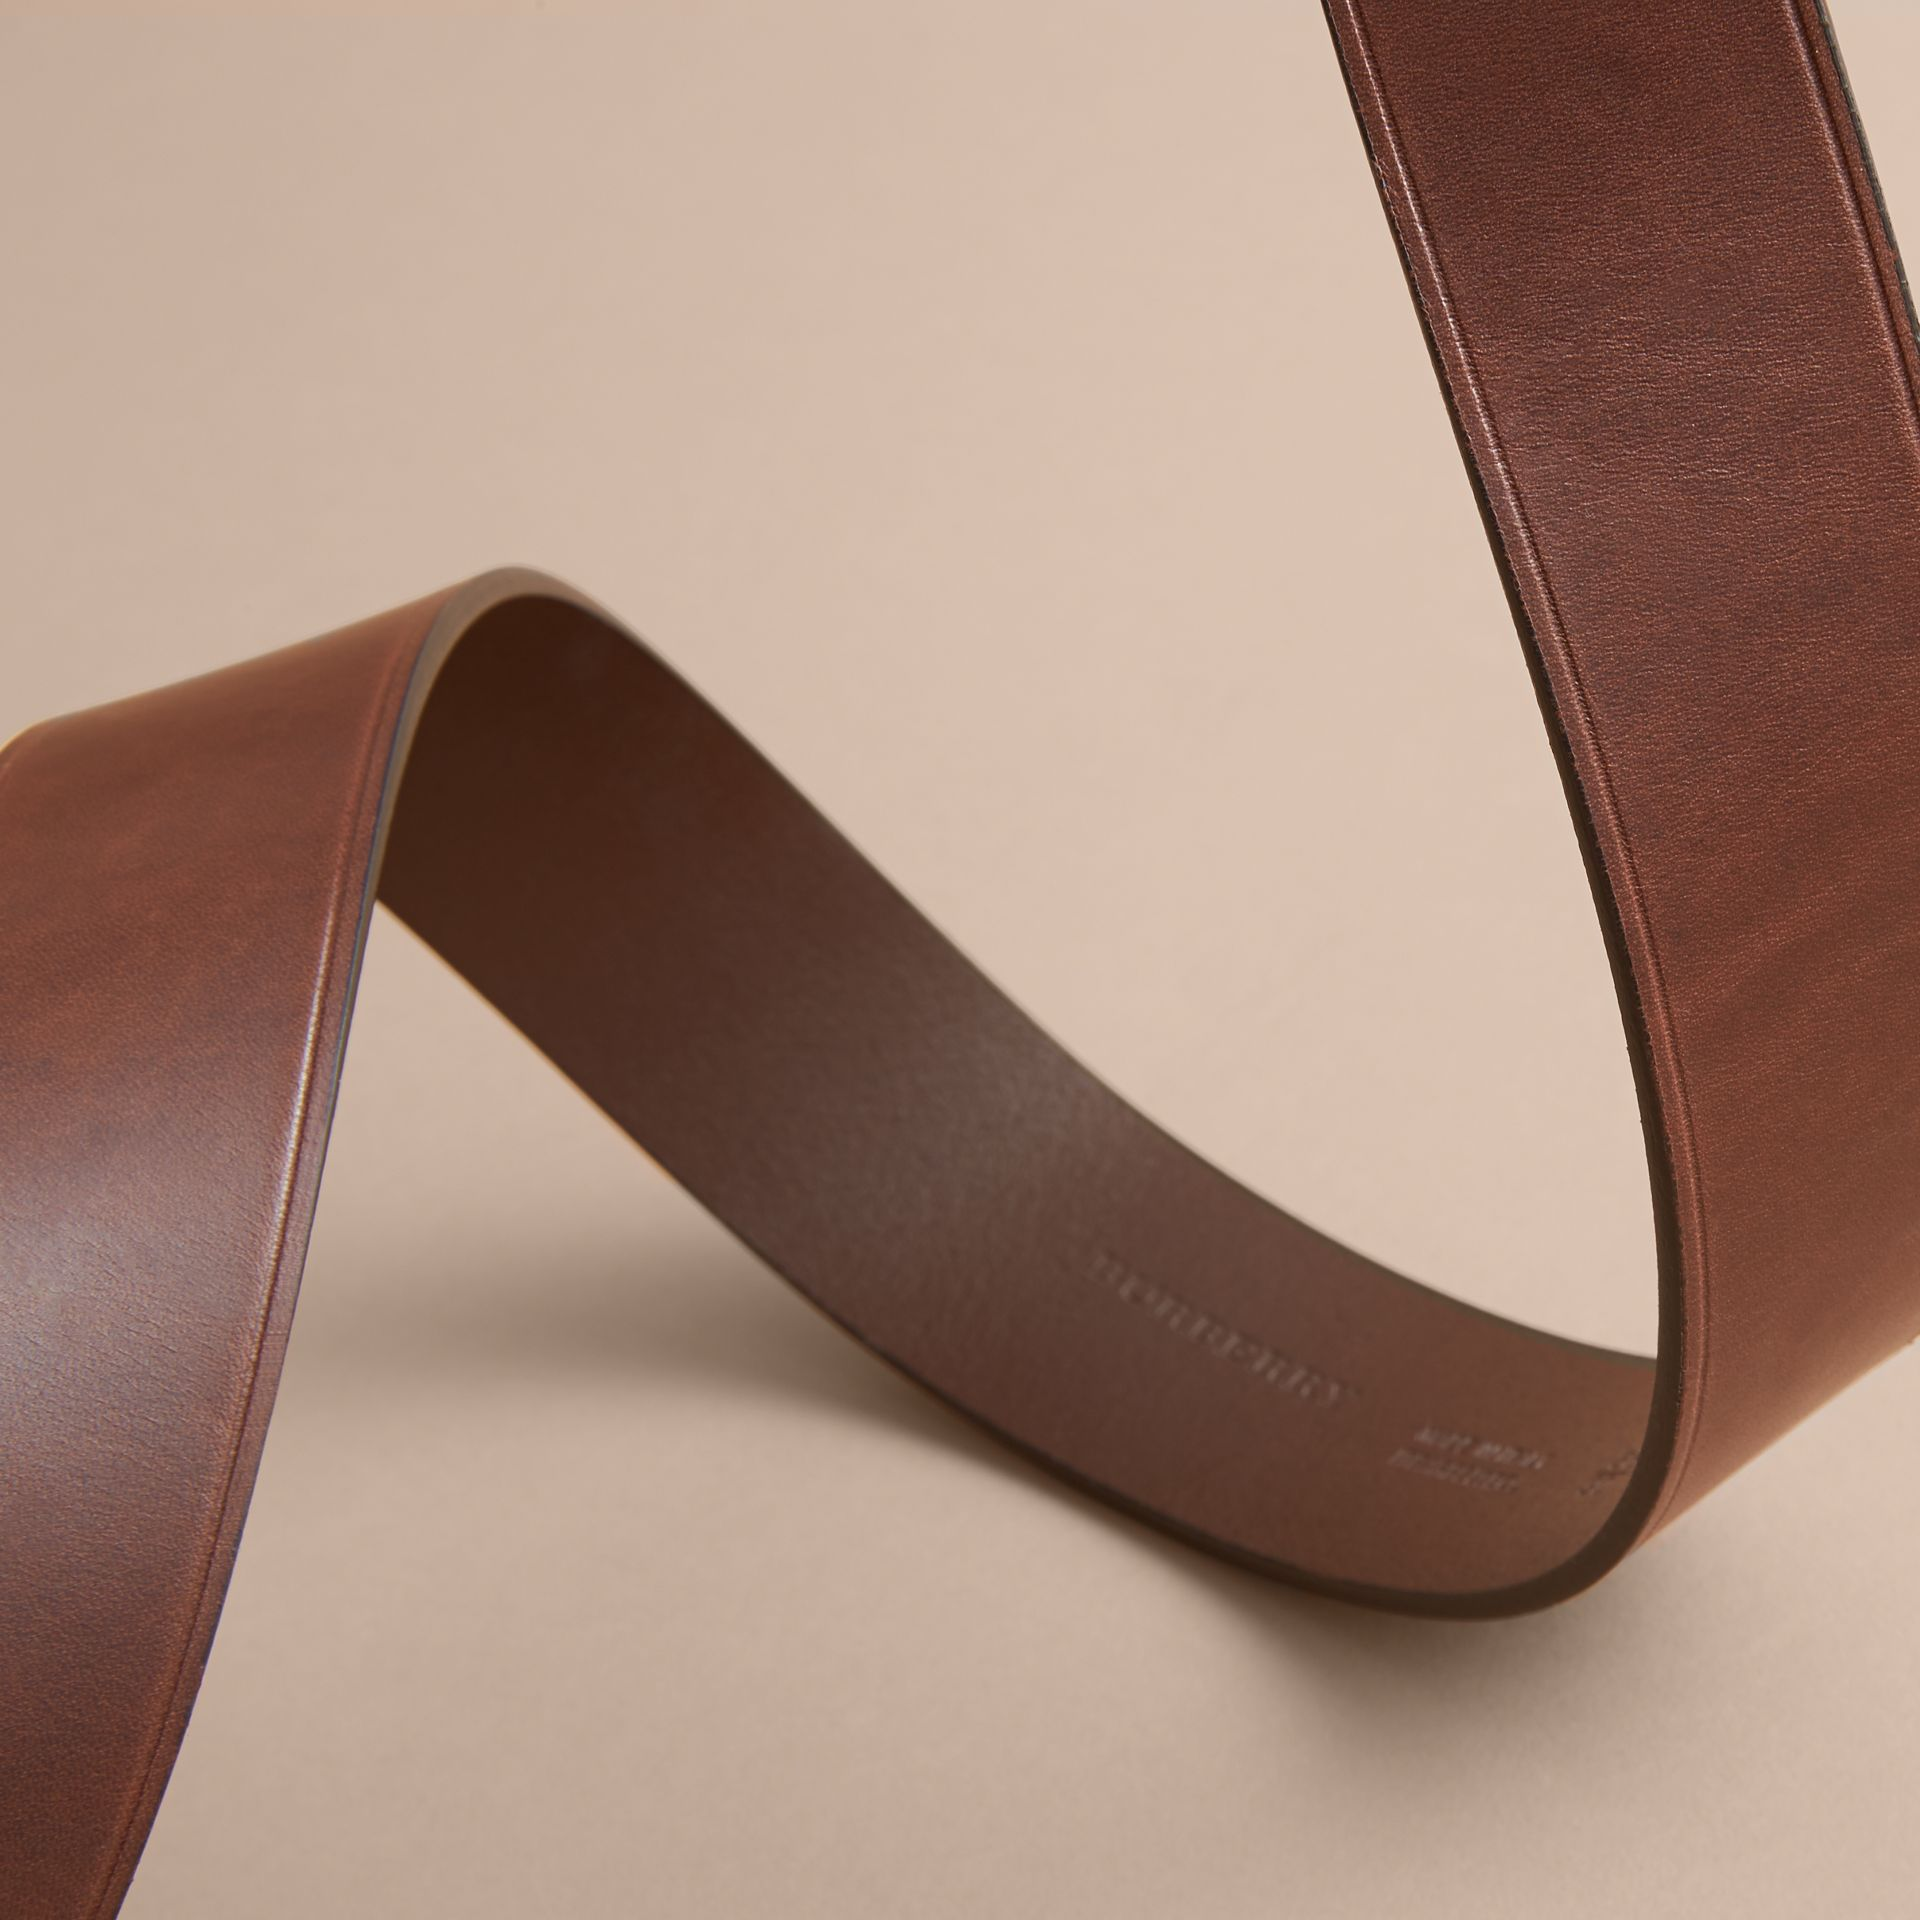 Brass Buckle Leather Belt in Auburn - Men | Burberry United States - gallery image 4